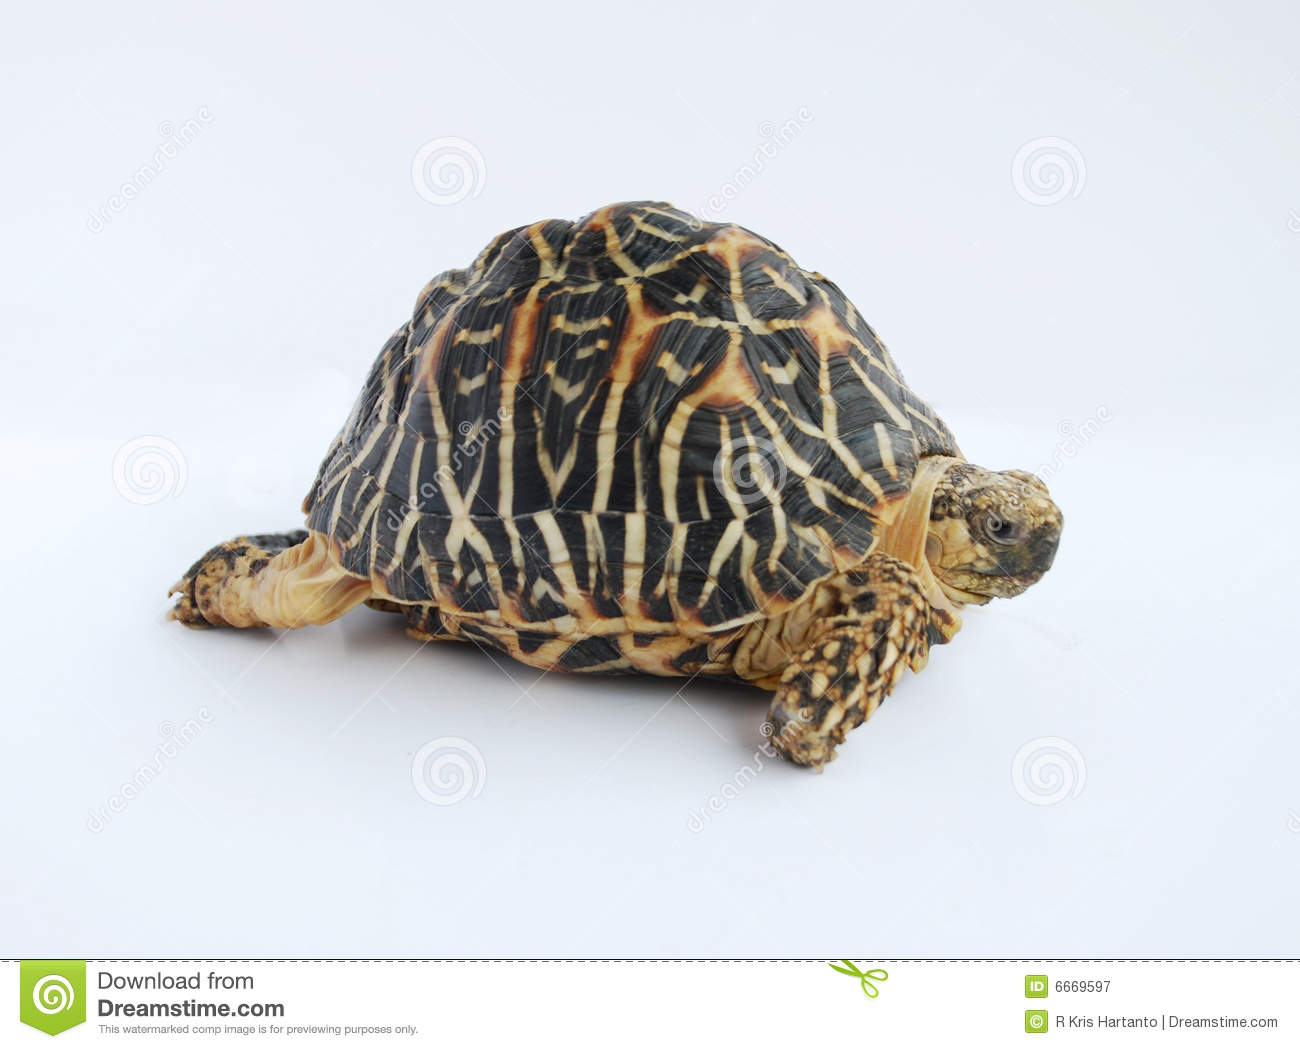 Indian Star Tortoise clipart #18, Download drawings